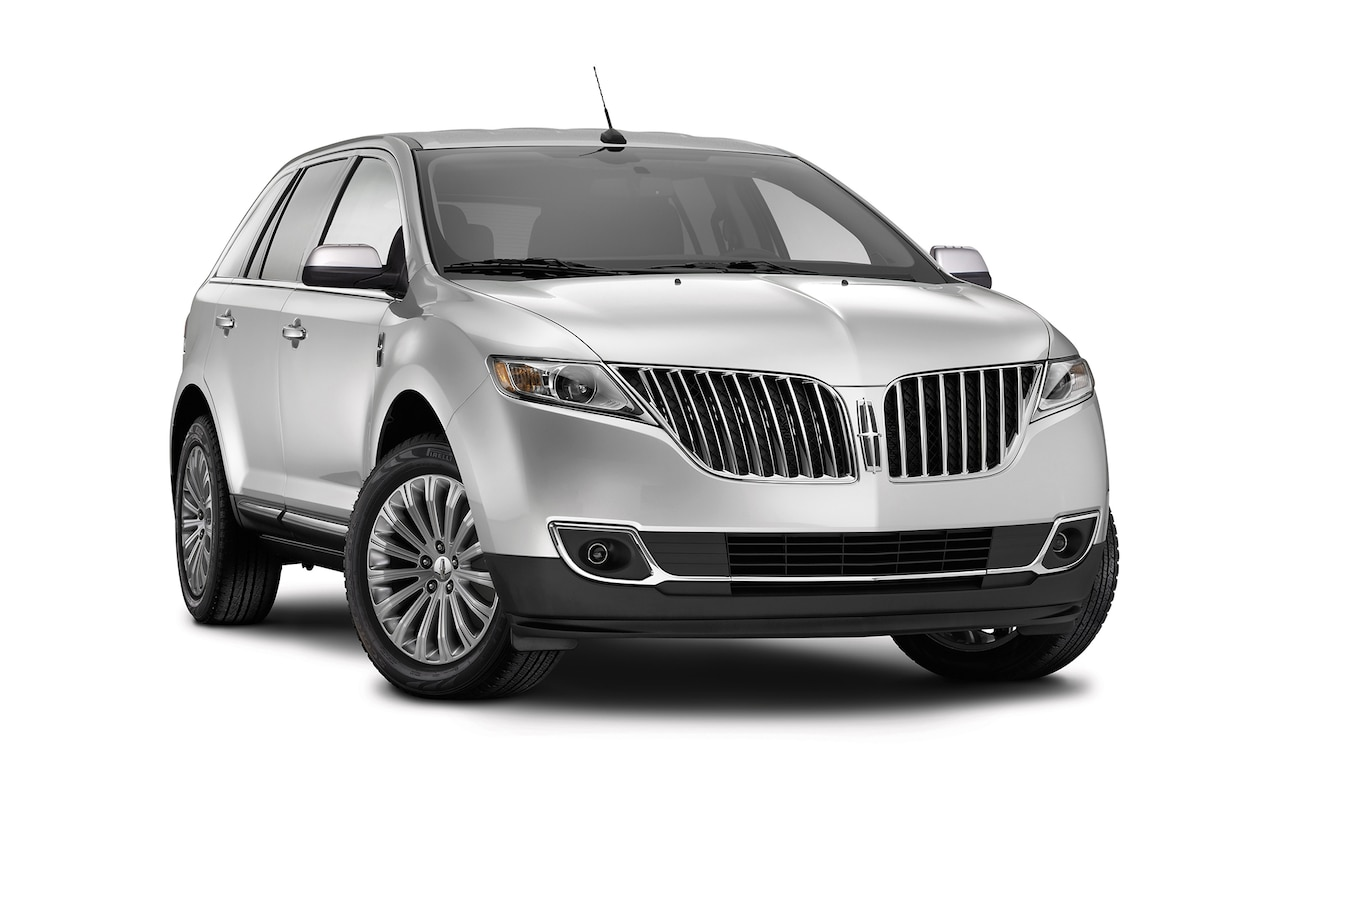 hight resolution of 2014 lincoln mkt diagram diy enthusiasts wiring diagrams u2022 lincolin mkt 2014 2014 lincoln mkt